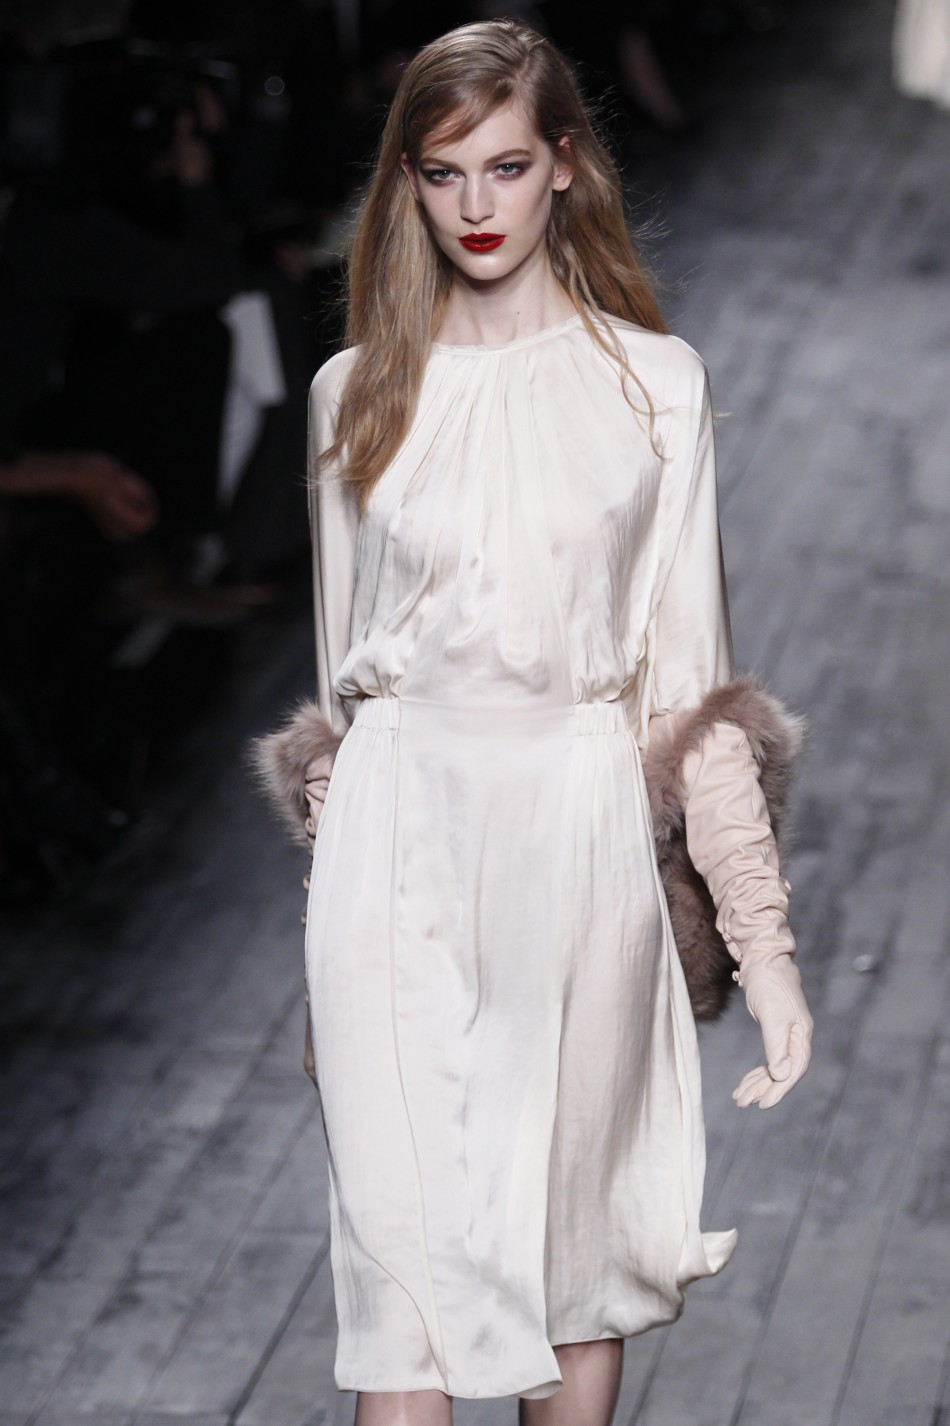 Paris Fashion Week Highlight: Peter Copping For Nina Ricci